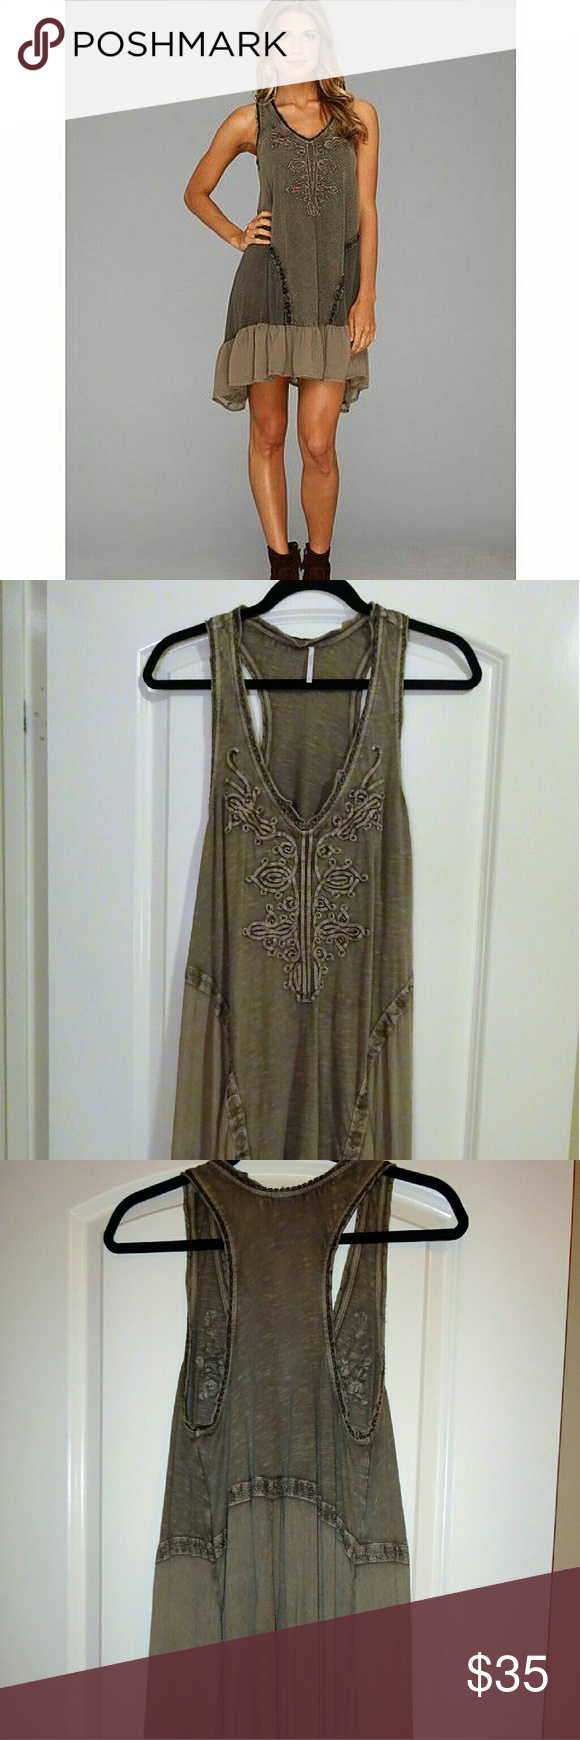 Free People olive green sundress Free People olive green cotton razer back tanktop dress with embroidery and beaded detail on front and ruffle trim at bottom. Super lightweight and comfortable - perfect for summer music festivals. Selling because I lost weight and it no longer fits. Free People Dresses Mini